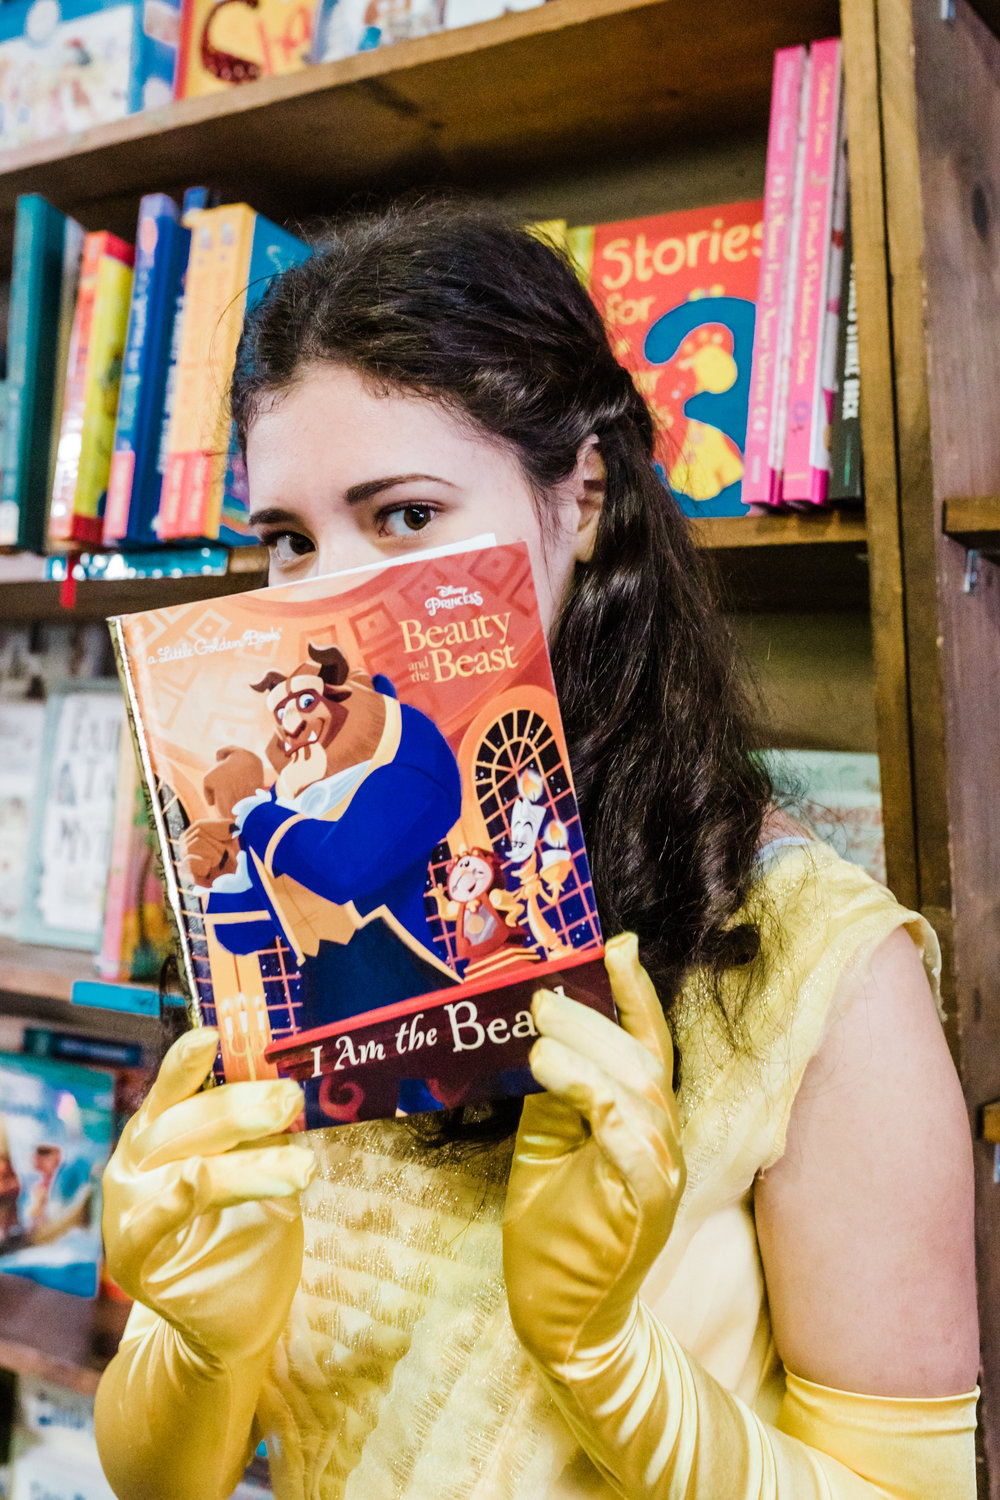 Anika Vodicka as Belle at the Bookseller | Lenkaland Photography